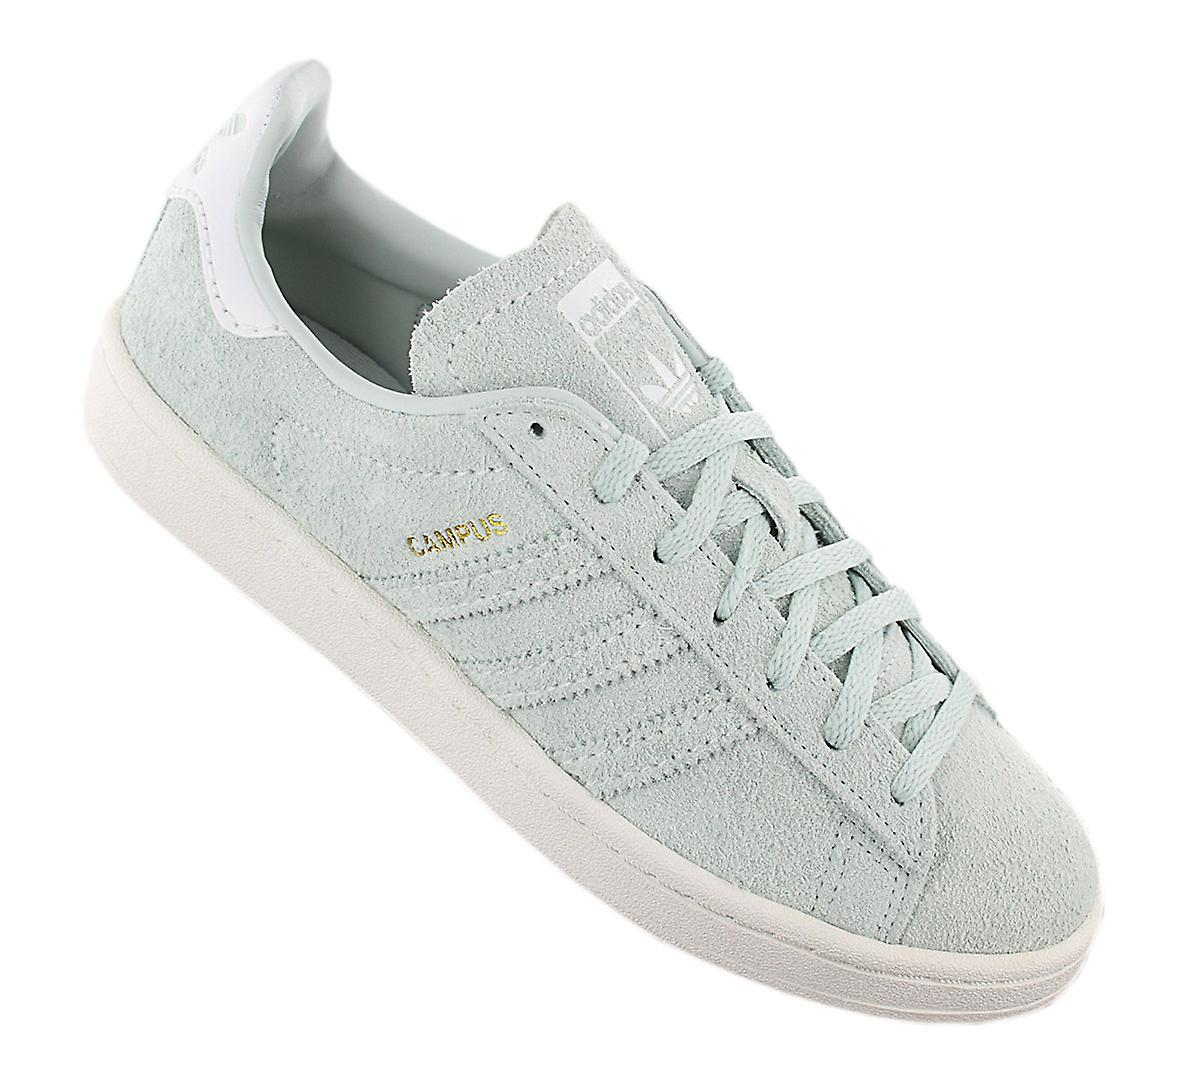 adidas Originals Campus Leather W B37937 Women's Shoes Green Sneakers Sports Shoes